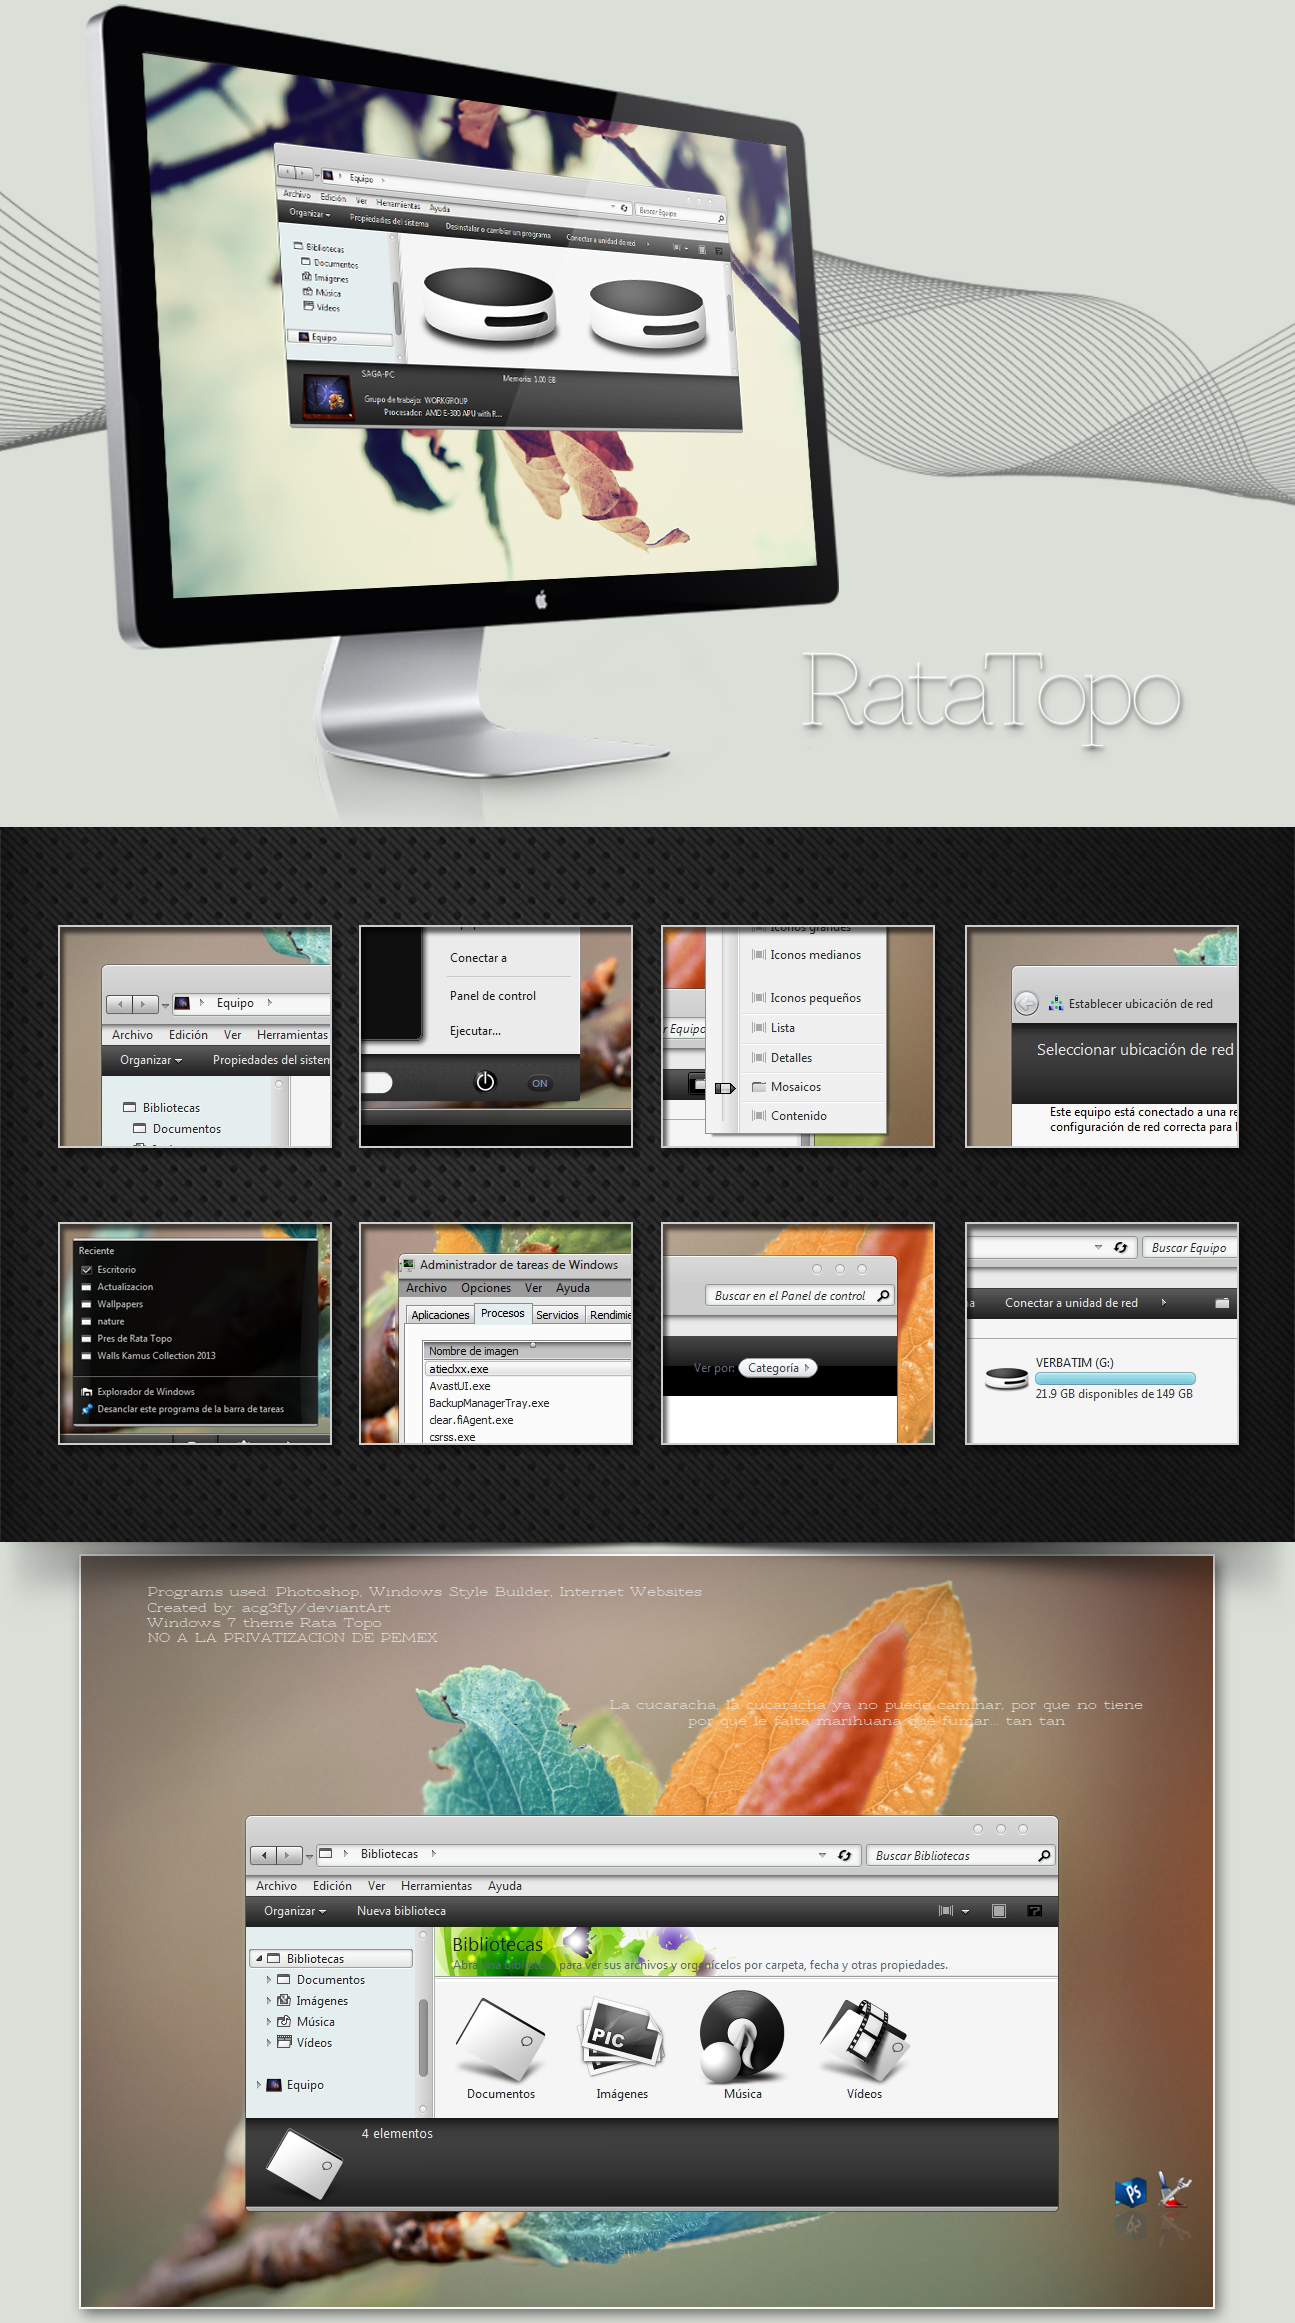 Theme Windows 7 Rata Topo (last updated 9 Mar) by acg3fly